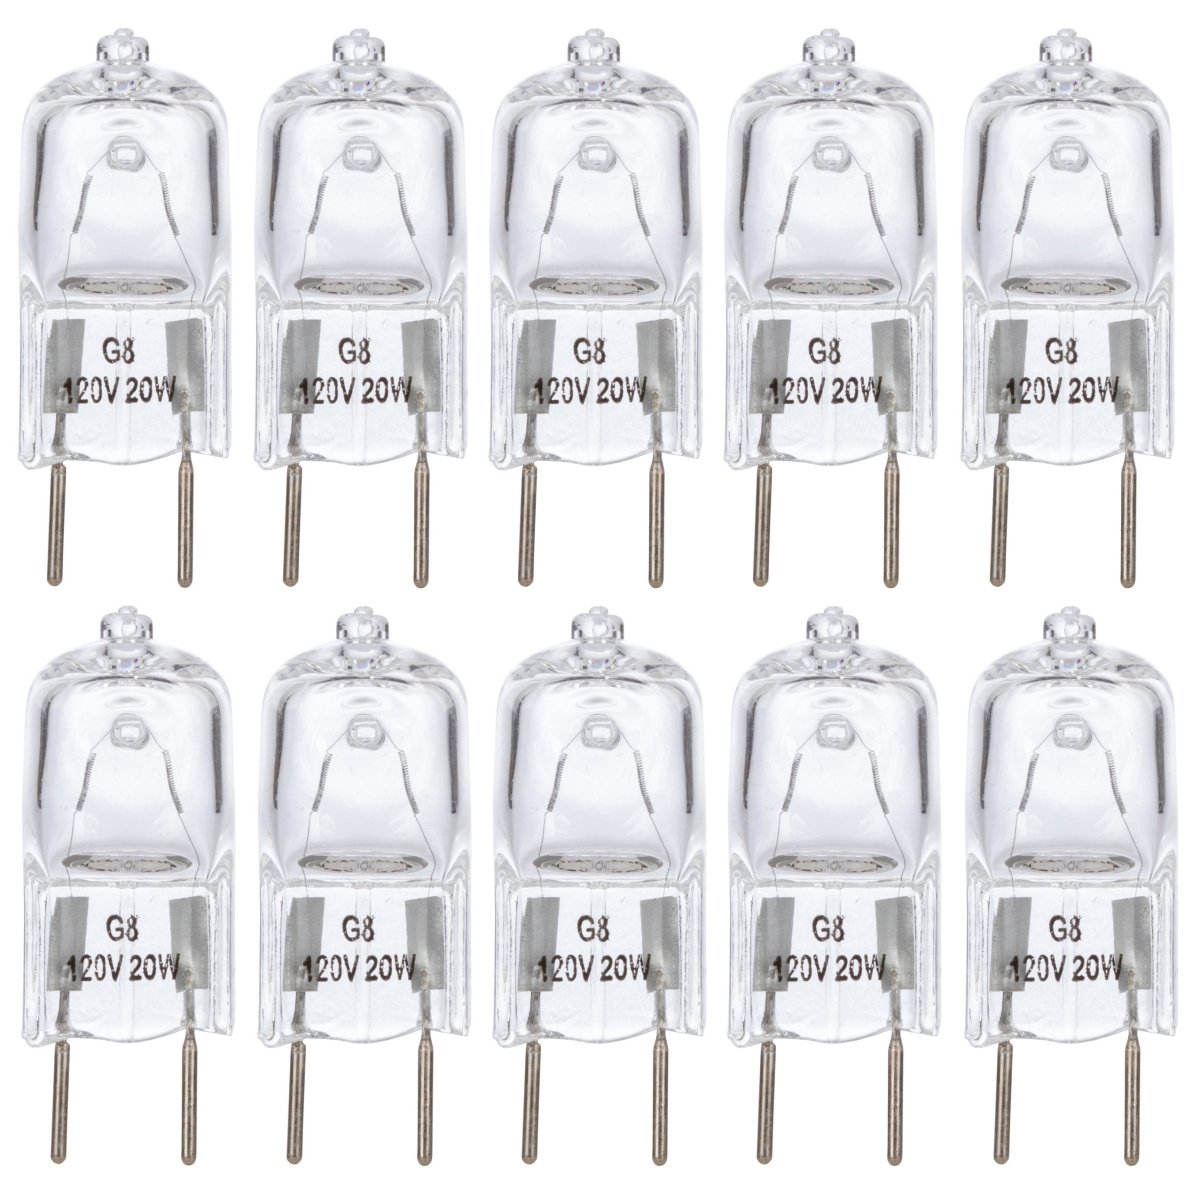 "[10 Pack] Simba Lighting™ 20 Watt 120 Volt Halogen Light Bulbs G8 Base Bi-Pin Shorter 1-3/8"" (1.38"") Length 120V 20W T4 JCD Lamp Soft White"